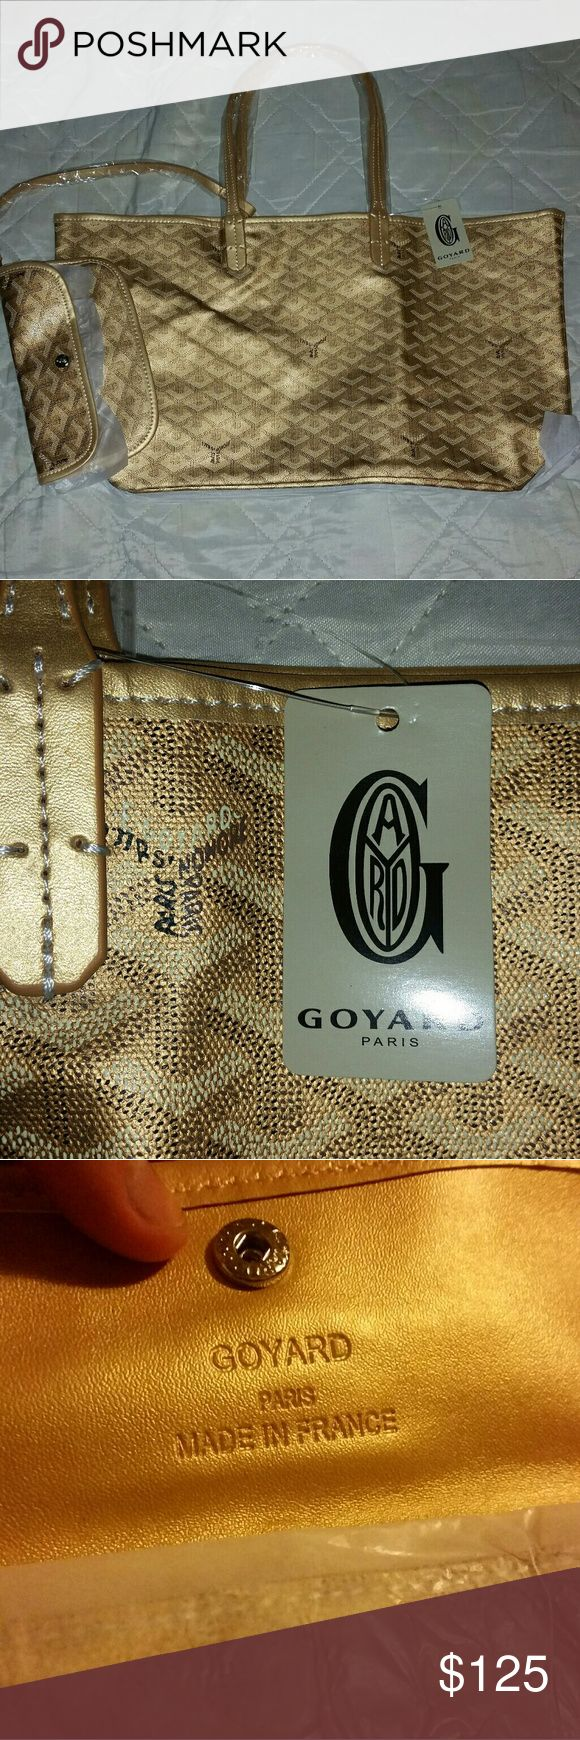 Tote bag and wallet Price says it all. The bag's leather is amazing and comes with tag and dustbag. Measurements : 18 x 18 inches (bag length 10 inches plus straps 8 inches makes length 18 in total)  ~plus, the gold is super flashy. Goyard Bags Totes